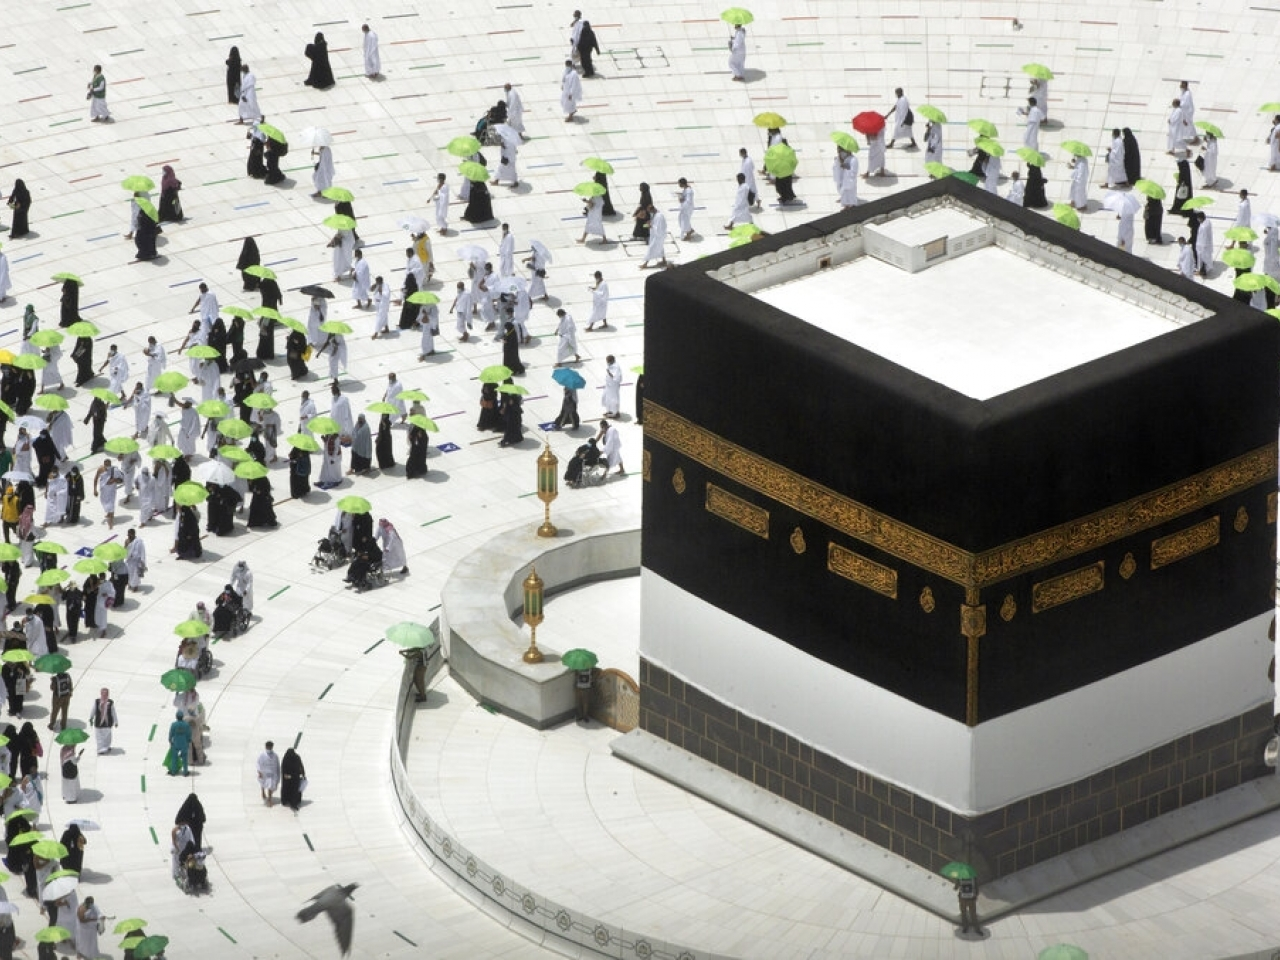 Muslim pilgrims circumambulate the Kaaba, the cubic building at the Grand Mosque, as they wear masks and keep social distancing. Photo: AP